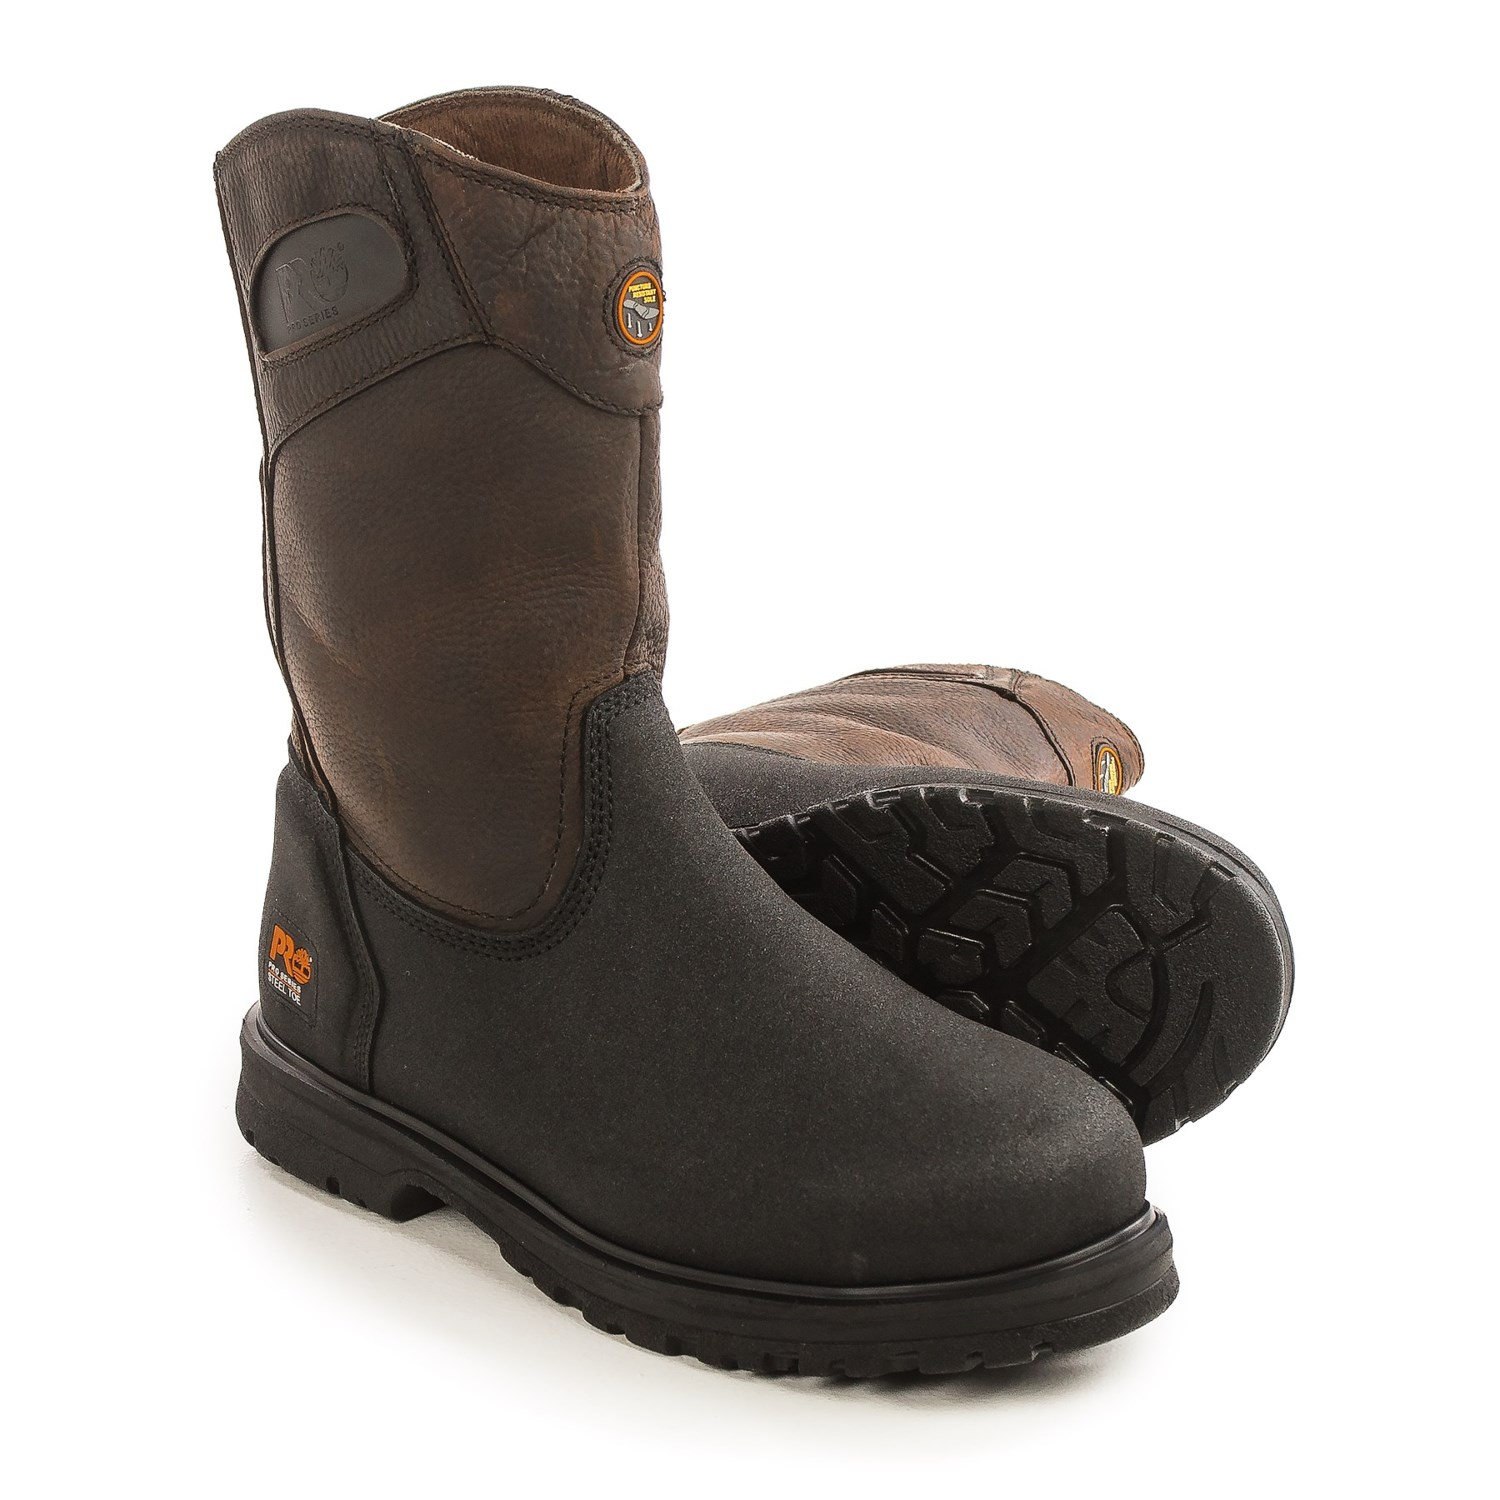 Timberland Pro Series Powerwelt Wellington Work Boots (For Men ...